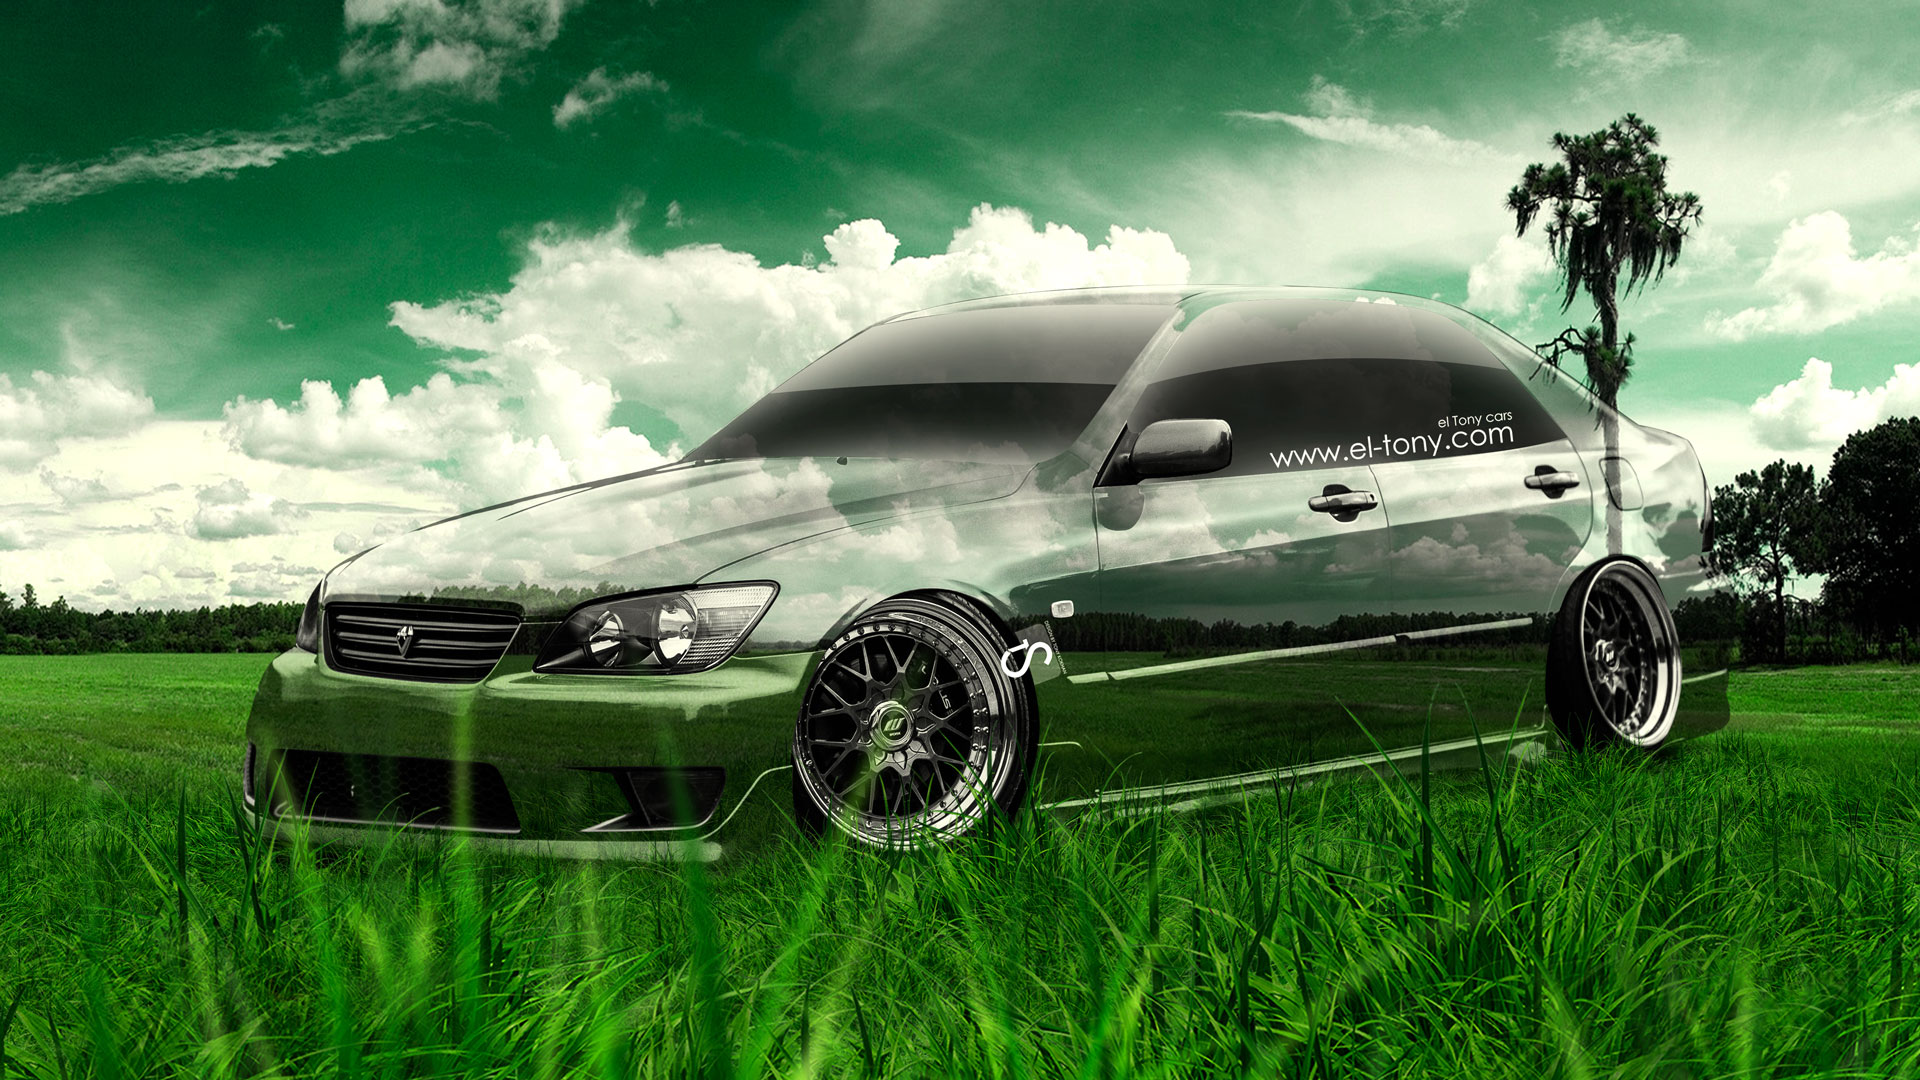 Superb Incroyable Toyota Altezza JDM Crystal Nature Car 2014 HD